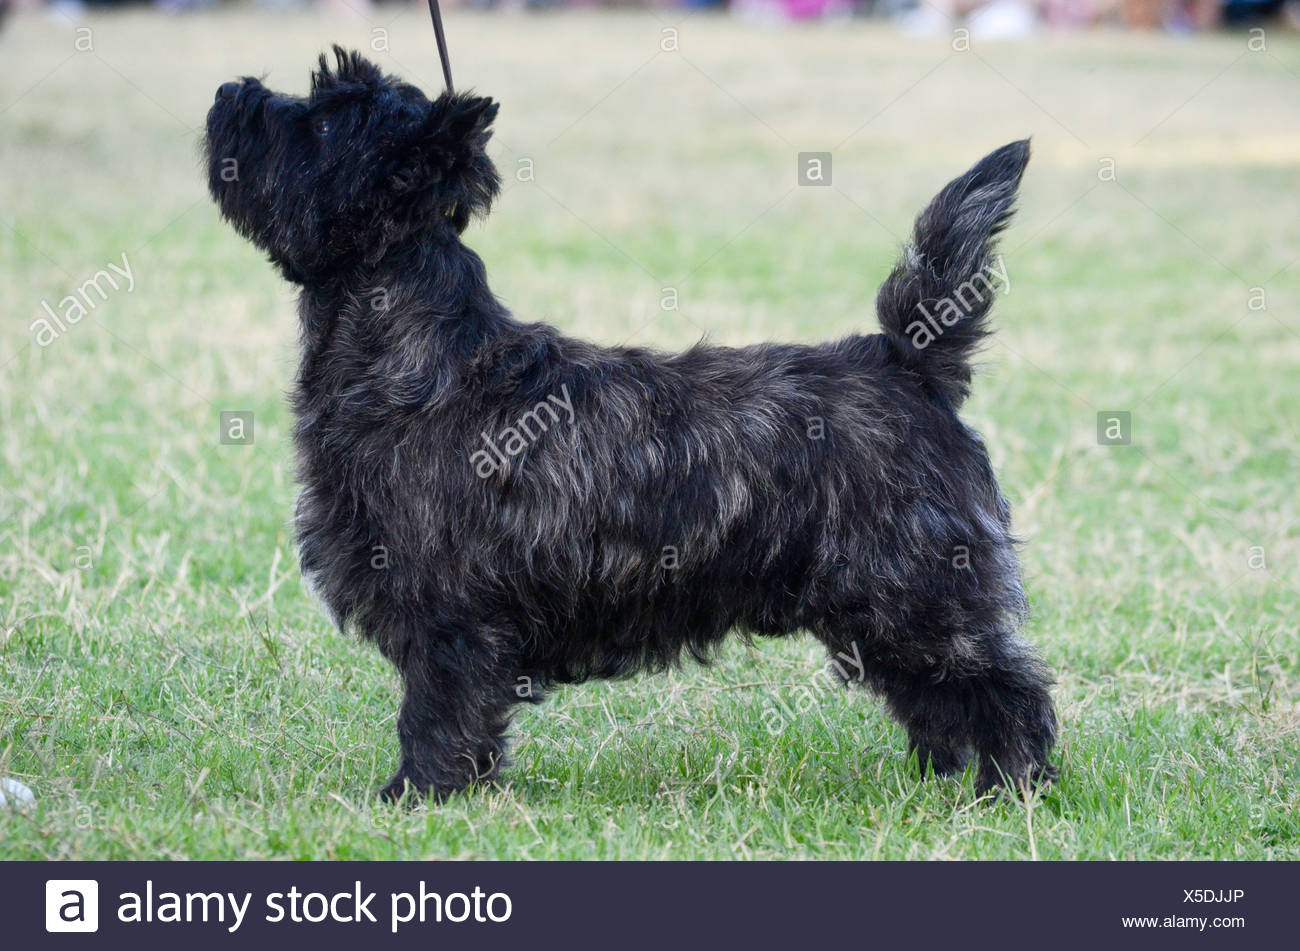 Cairn Terrier At A Dog Show Stock Photo Alamy